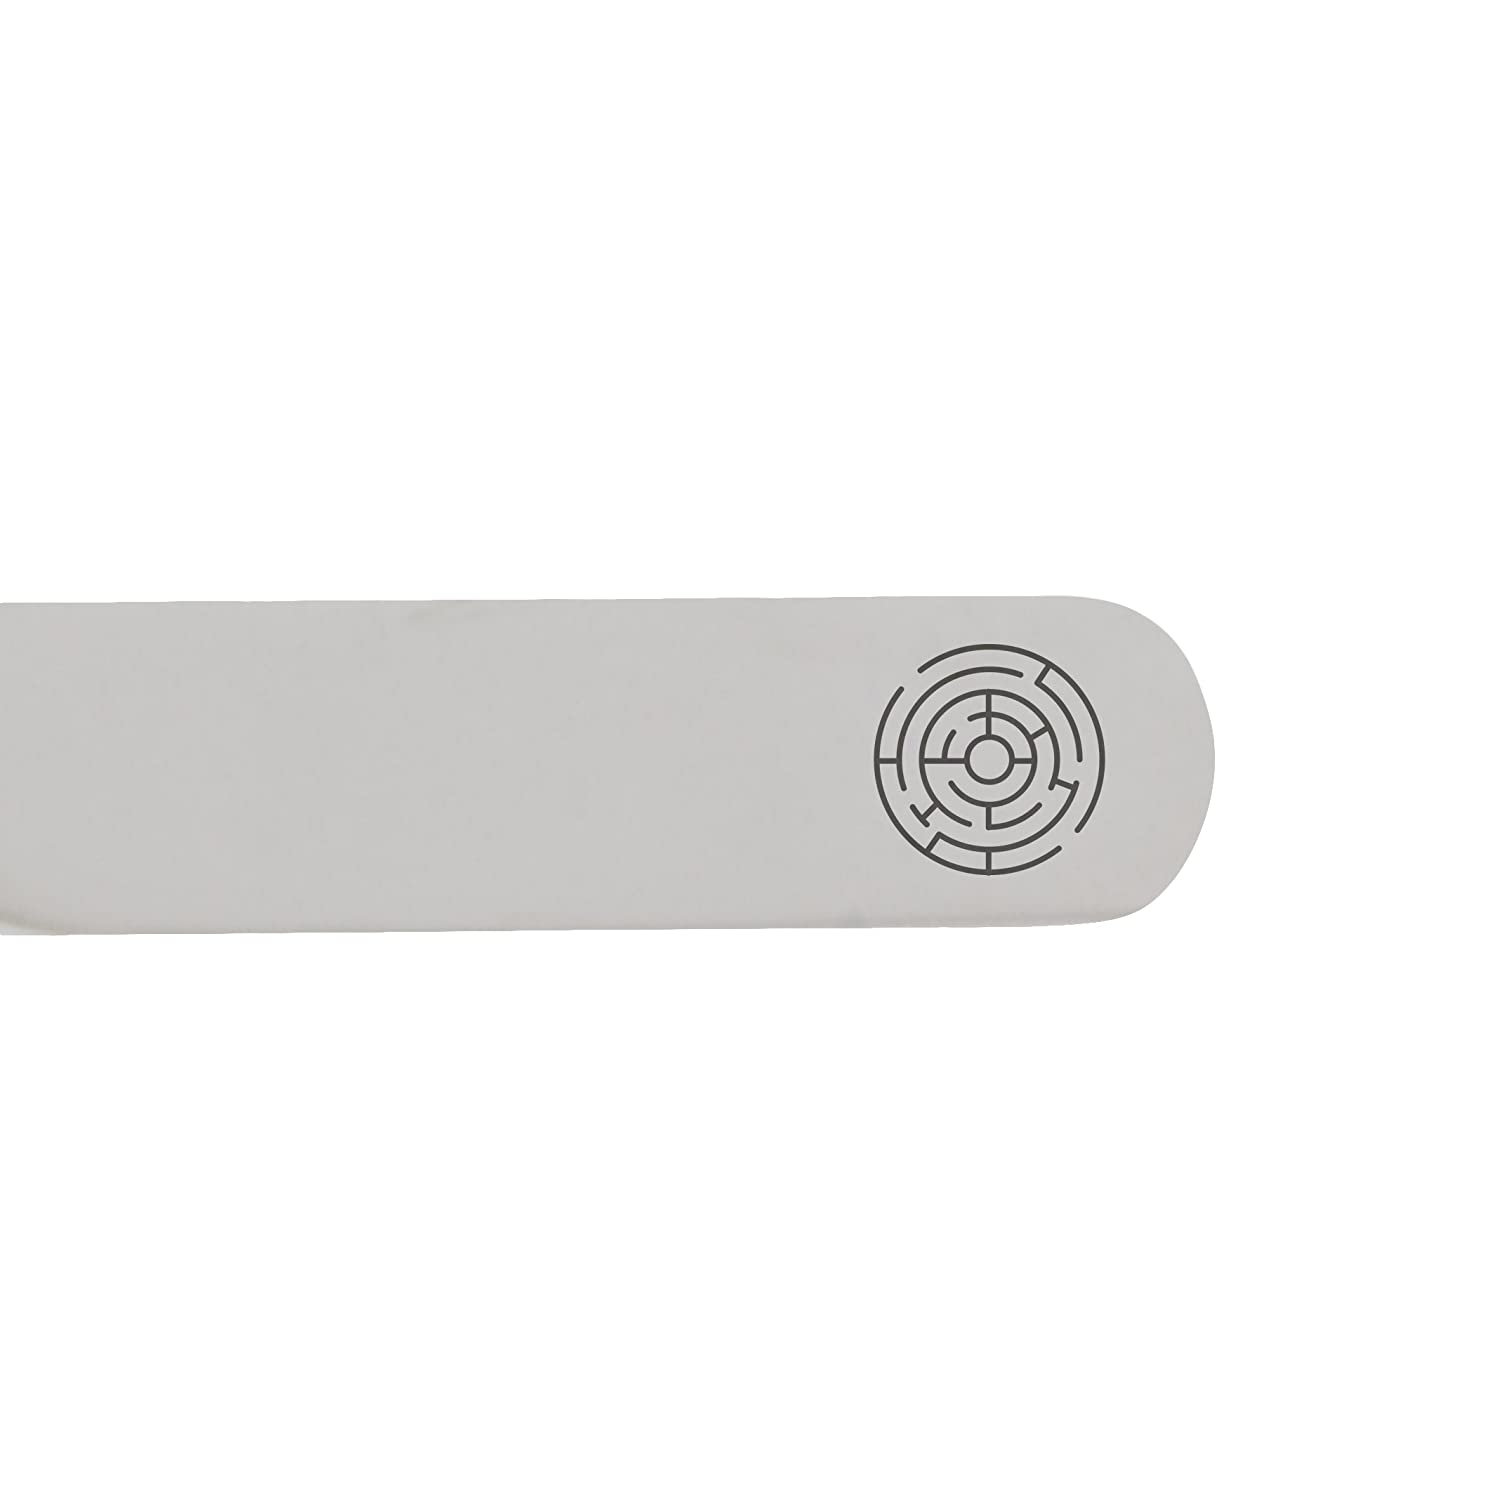 MODERN GOODS SHOP Stainless Steel Collar Stays With Laser Engraved Maze Of Life Design 2.5 Inch Metal Collar Stiffeners Made In USA